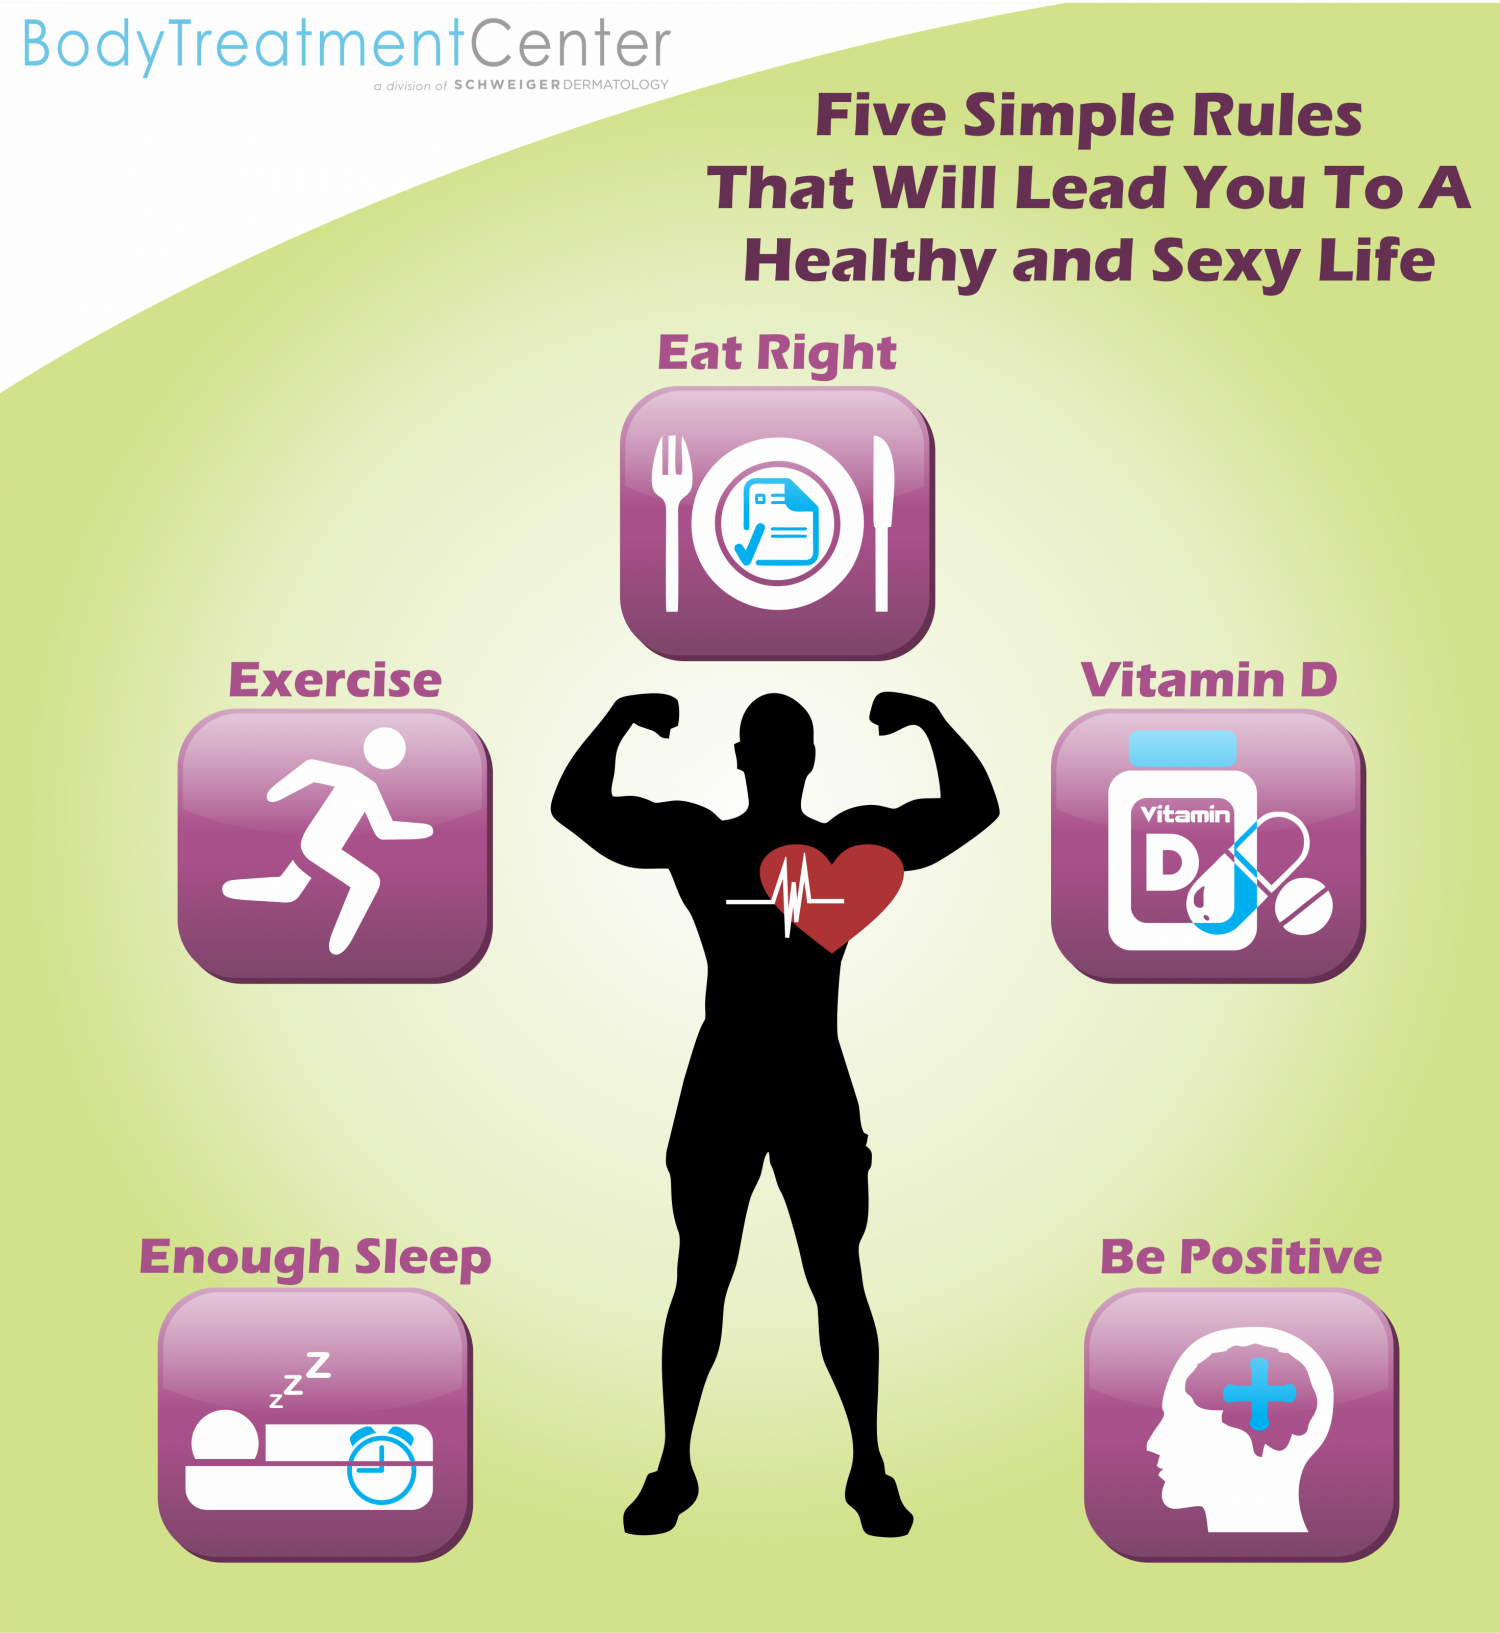 Five Simple Rules That Will Lead You to a Healthy And Sexy Life Infographic